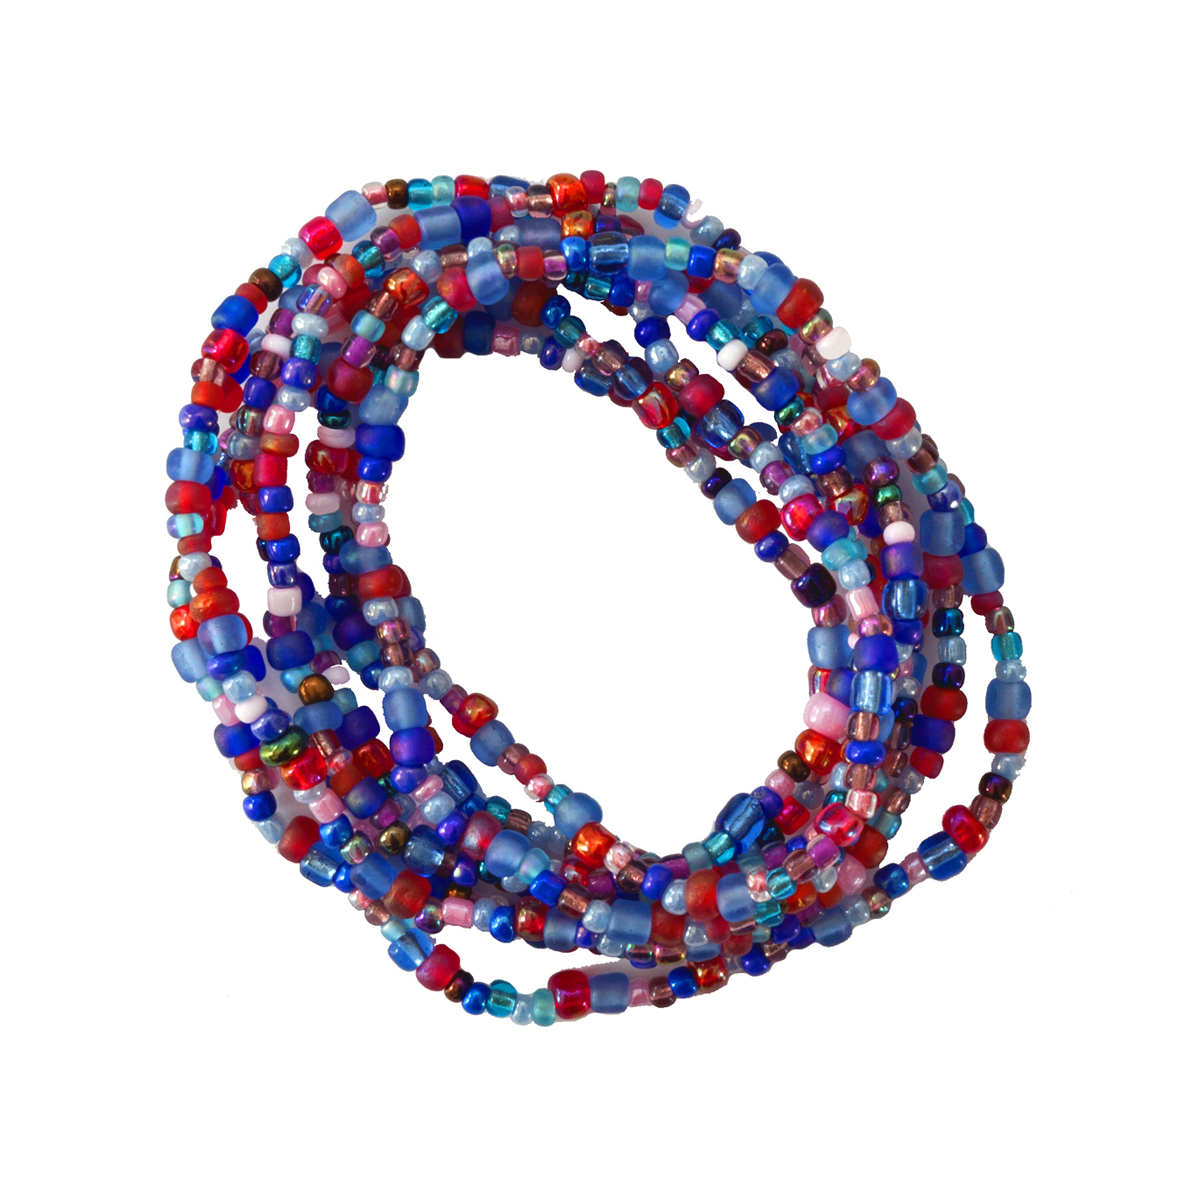 Kidz Positive bead necklace